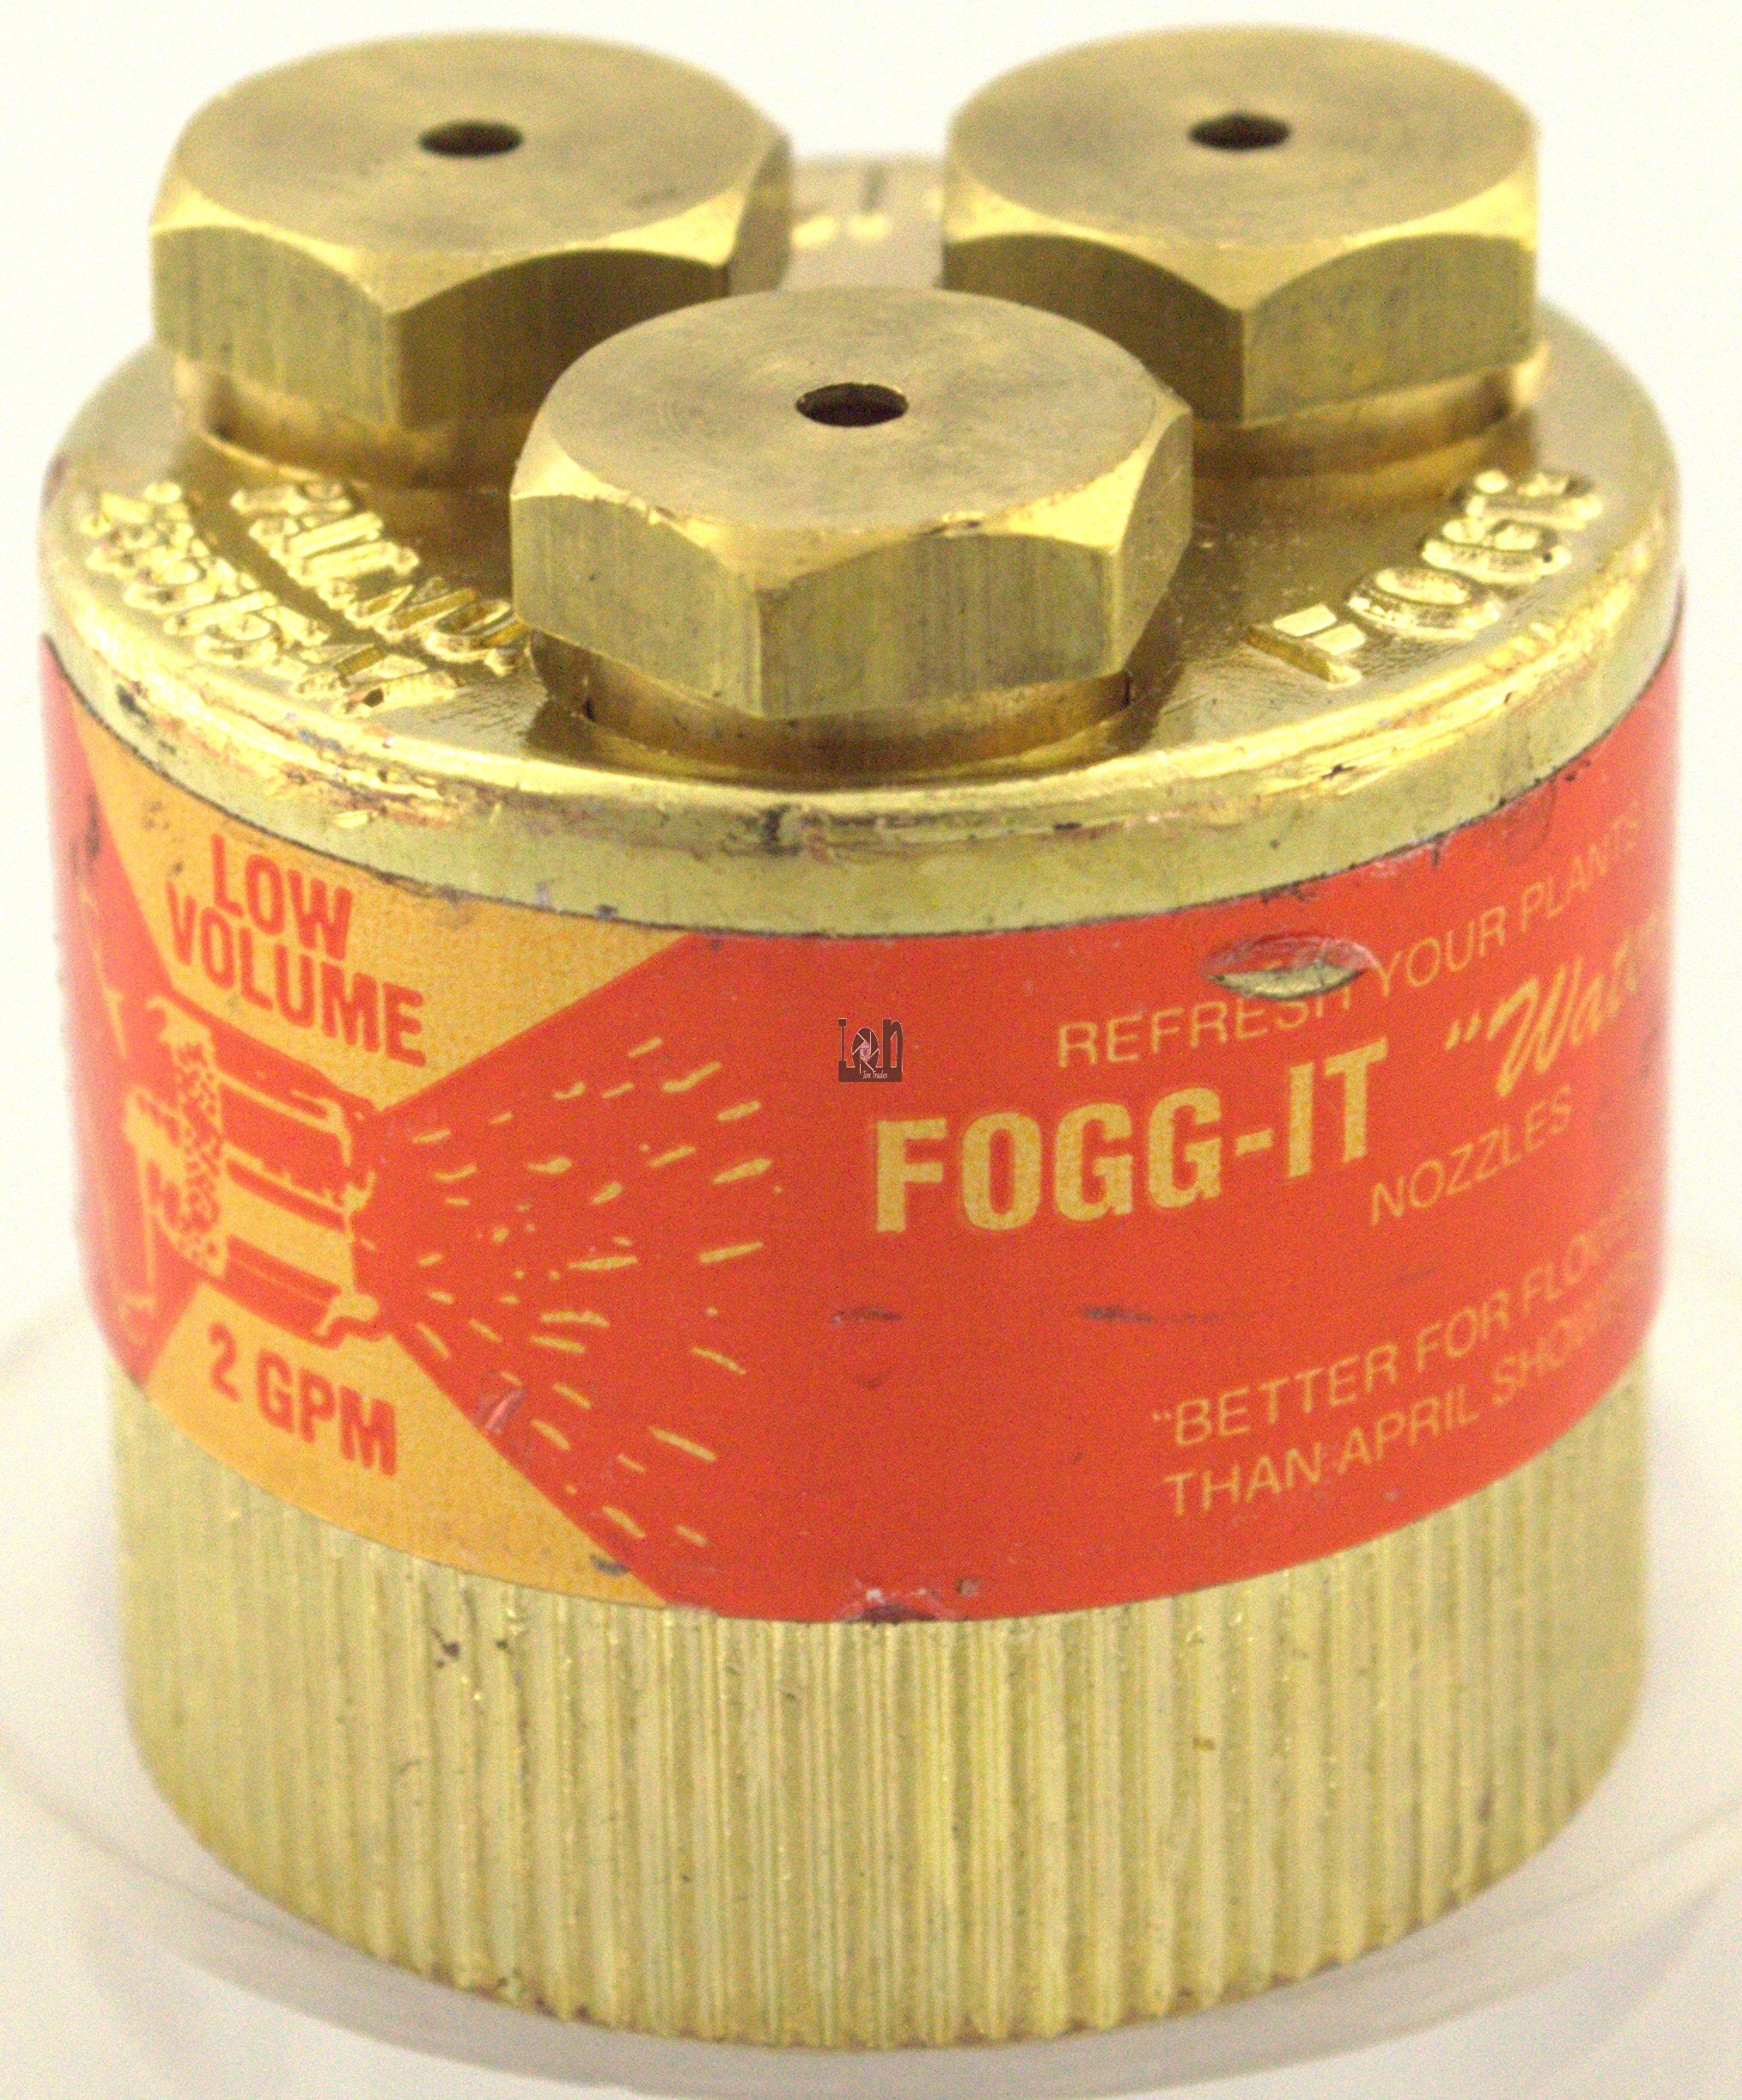 FOGG-IT Nozzle Low Volume Garden Hose Adapter 2GPM